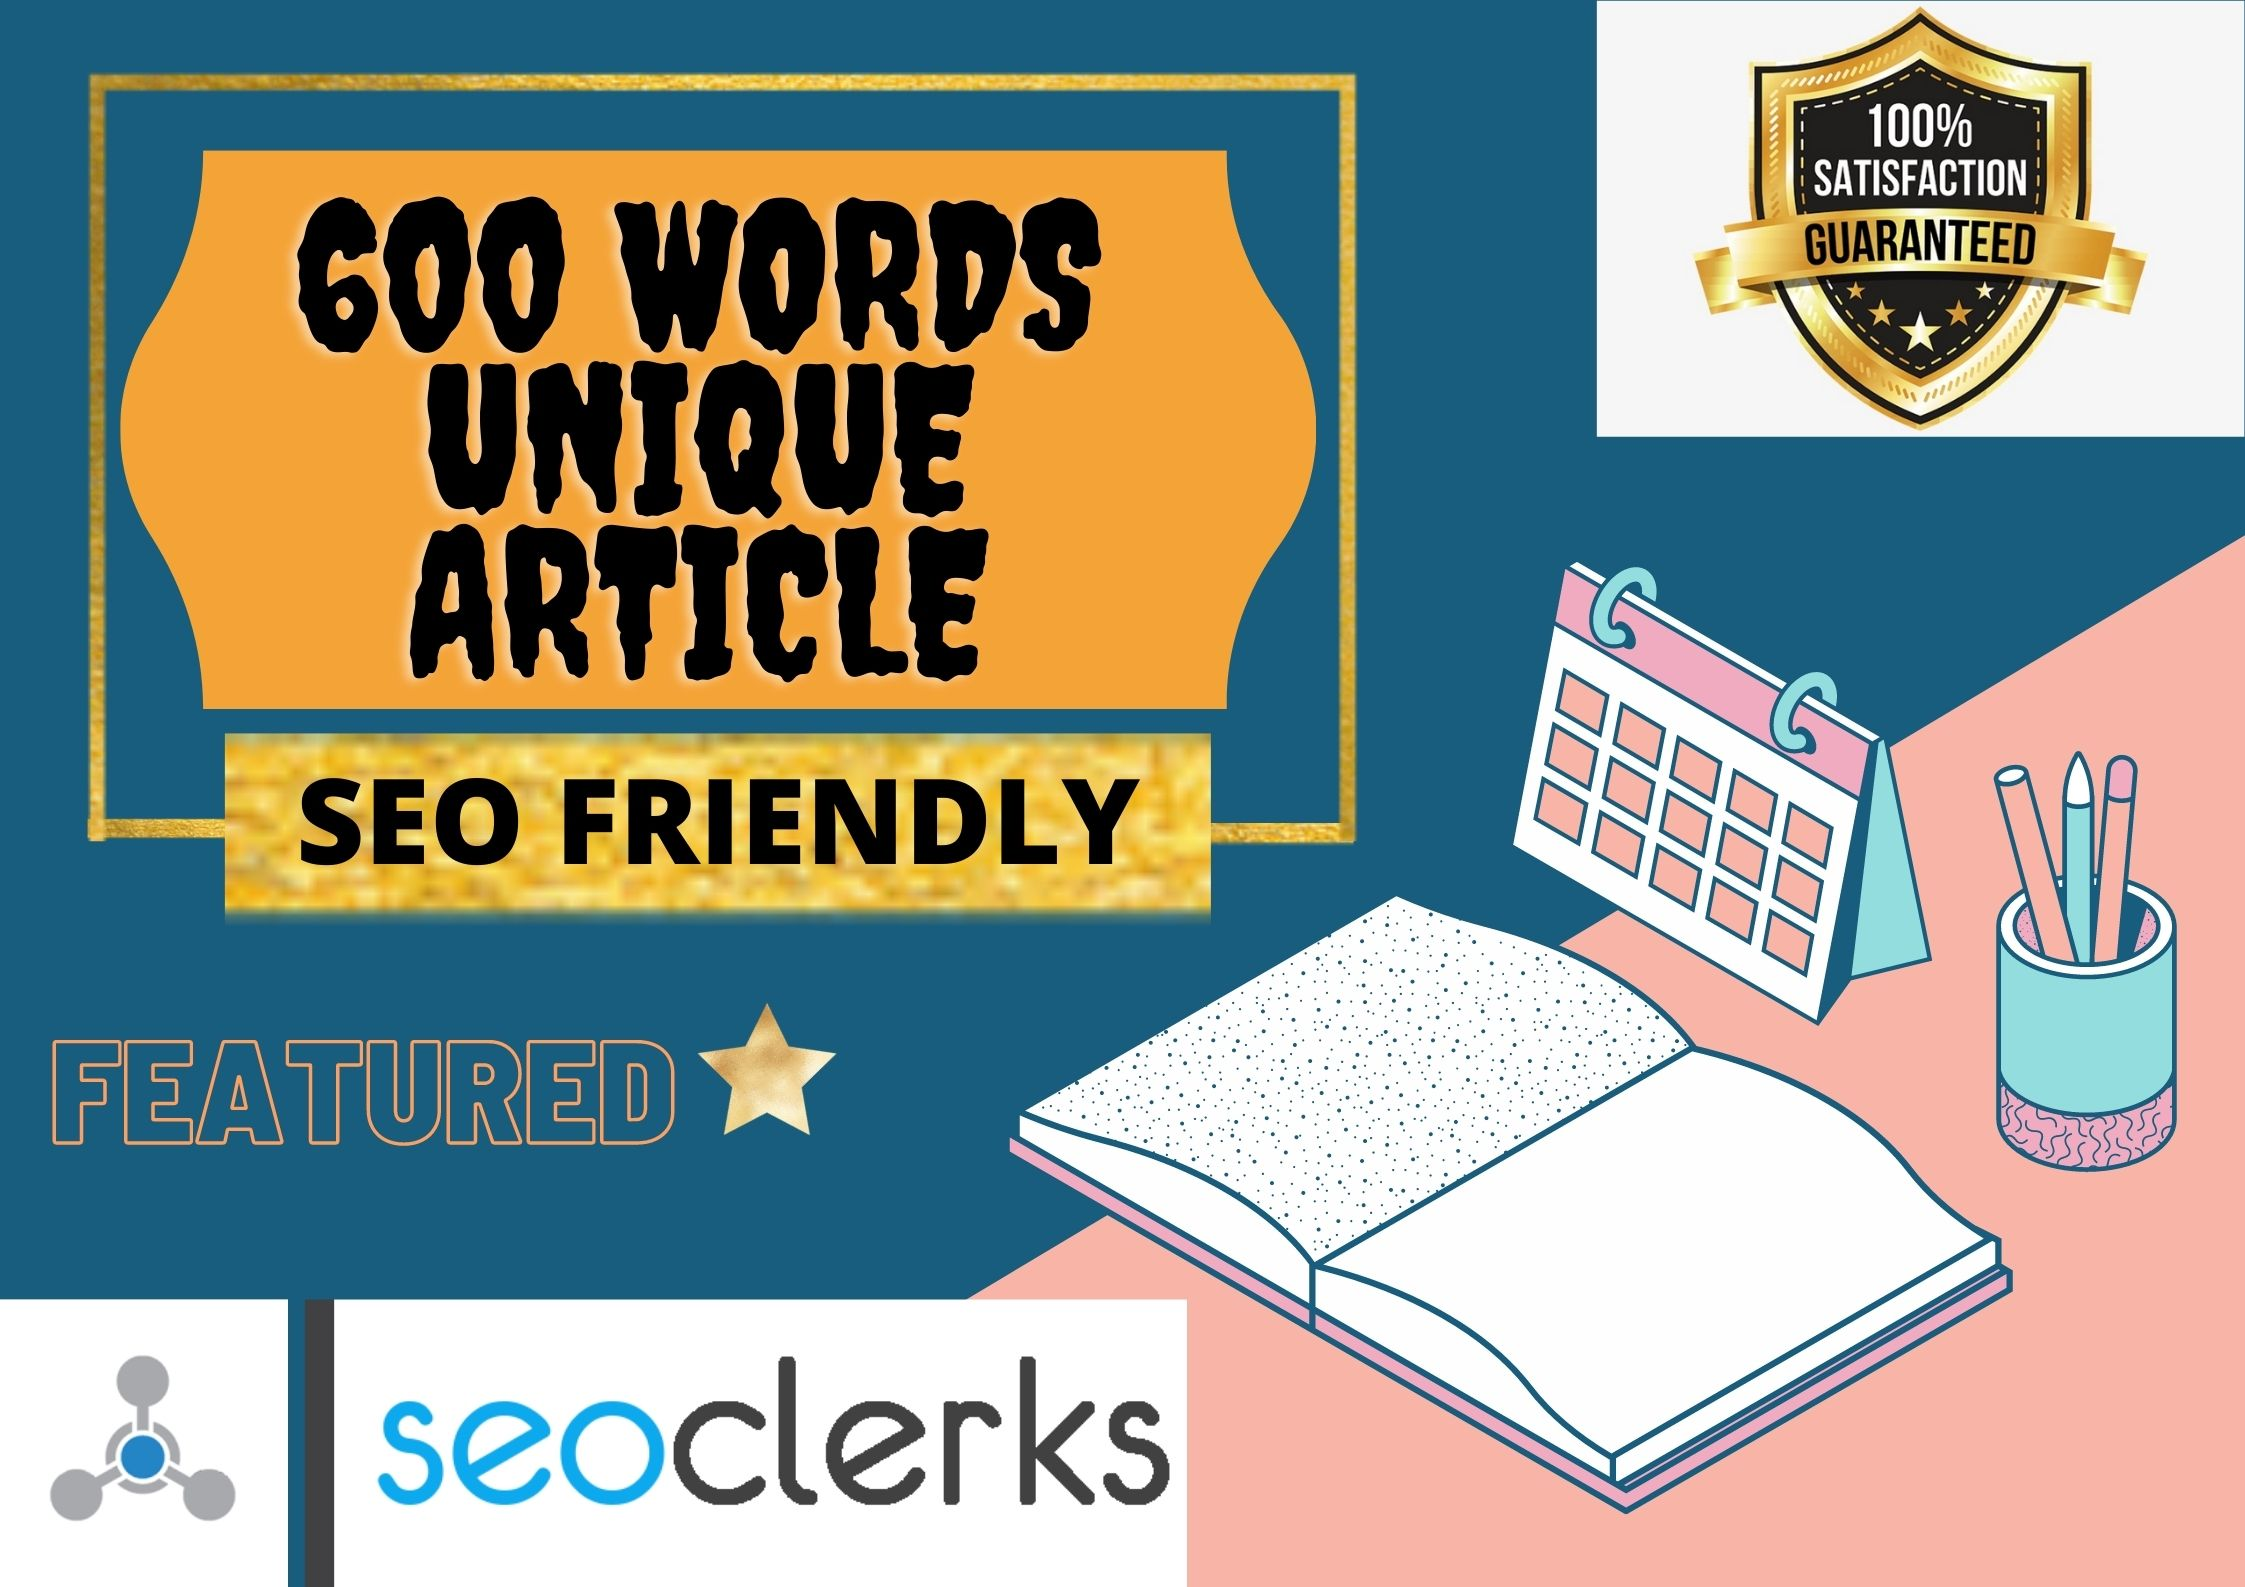 I will provide article writing service of 600 words in 24 hours